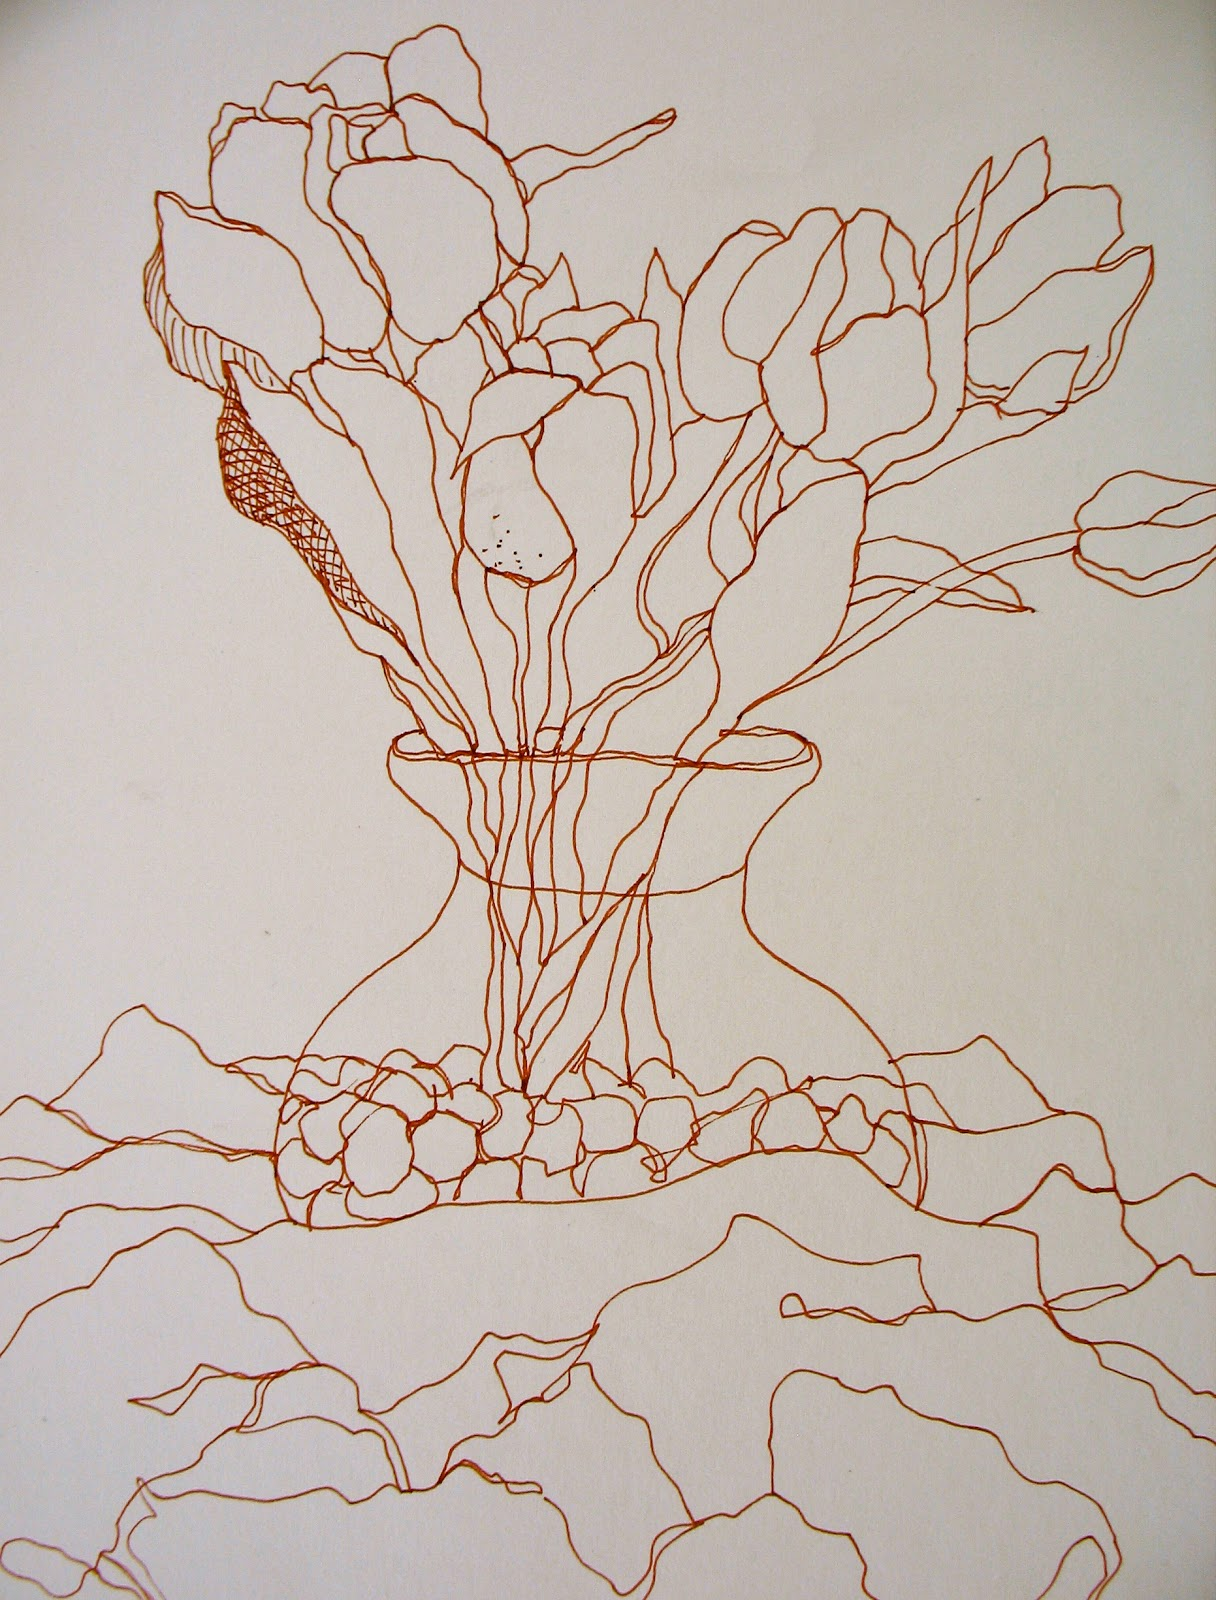 Simple Contour Line Drawings Of Flowers : The painted prism flowers sketchbook exercises to try